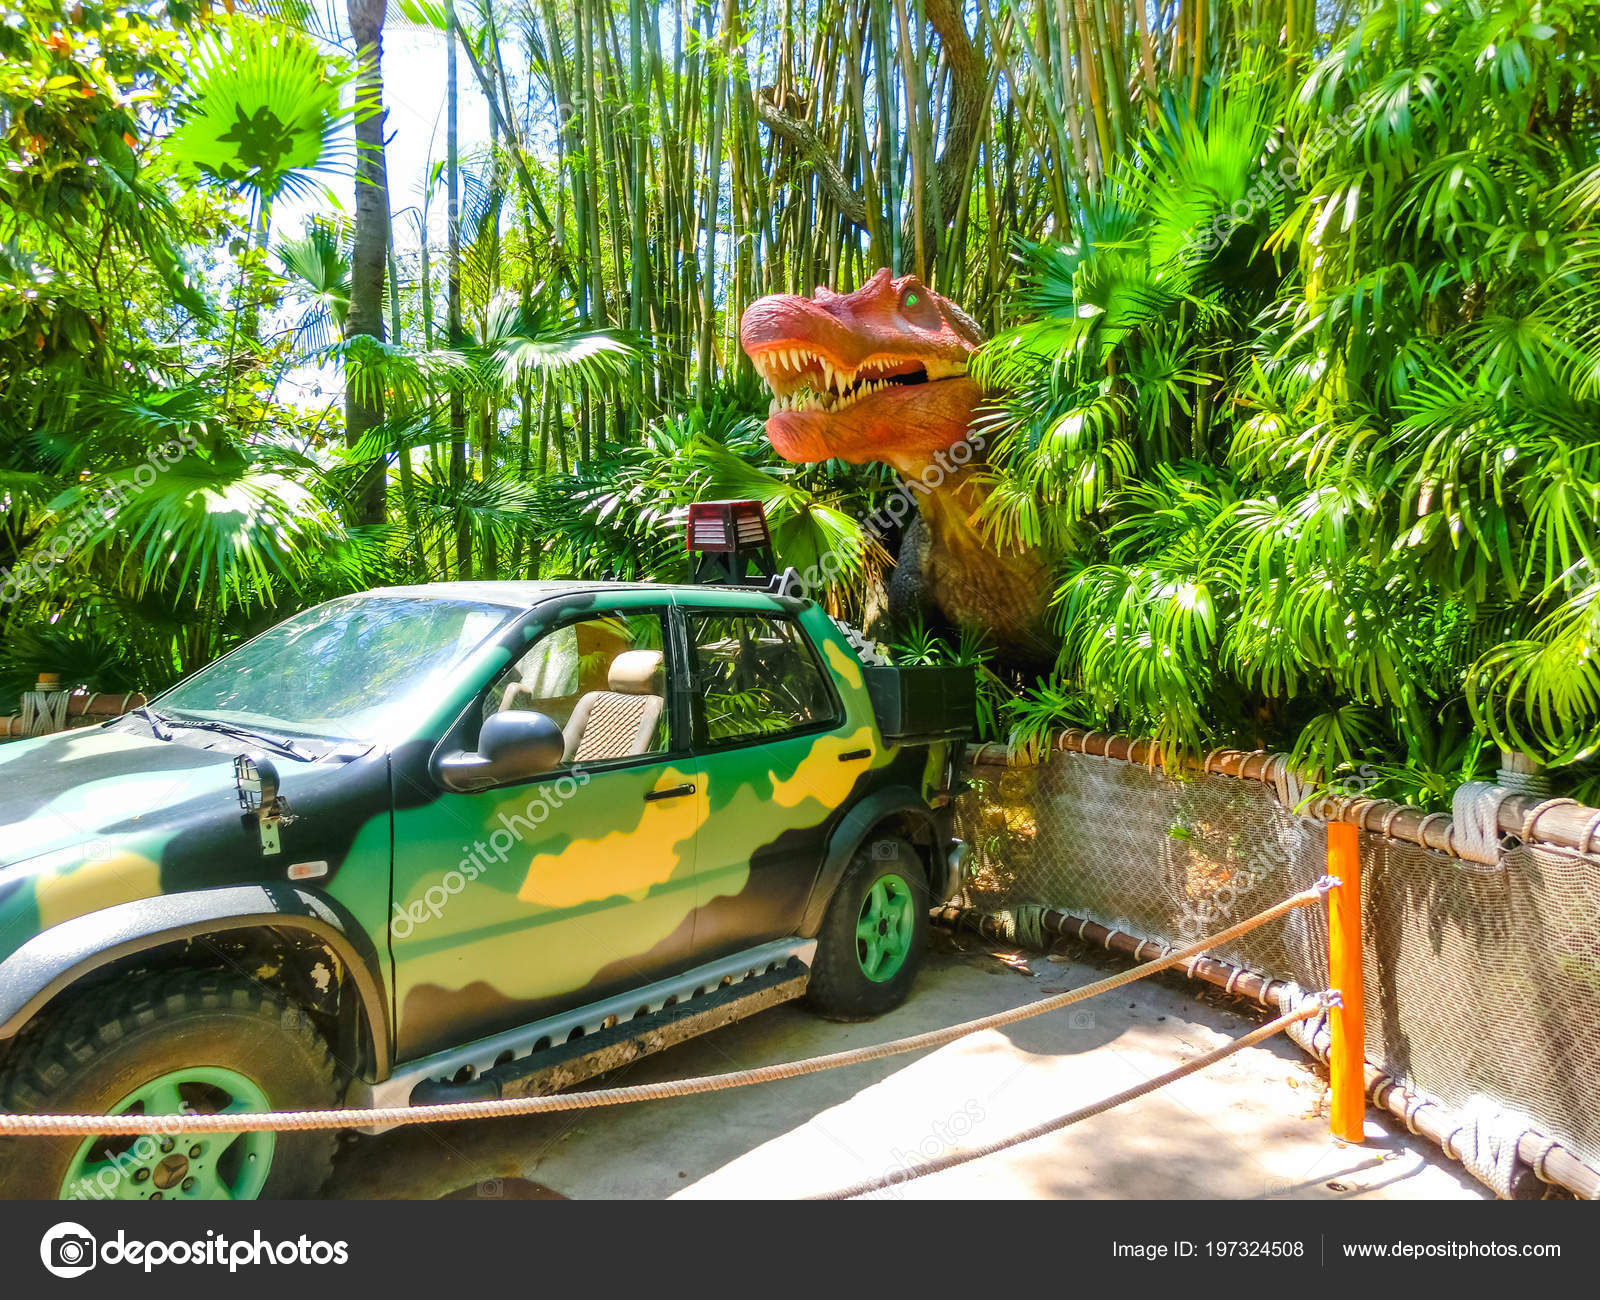 Orlando Florida May 09 2018 Jurassic Park Dinosaur And Jeep At Universal Studios Islands Of Adventure Theme Park Stock Editorial Photo C Marina113 197324508 Universal studios japan, or usj as it's known for short, isn't exactly a cheap day out, but it is a popular destination in osaka, with thousands making the pilgrimage to visit harry potter's wizarding. https depositphotos com 197324508 stock photo orlando florida may 09 2018 html